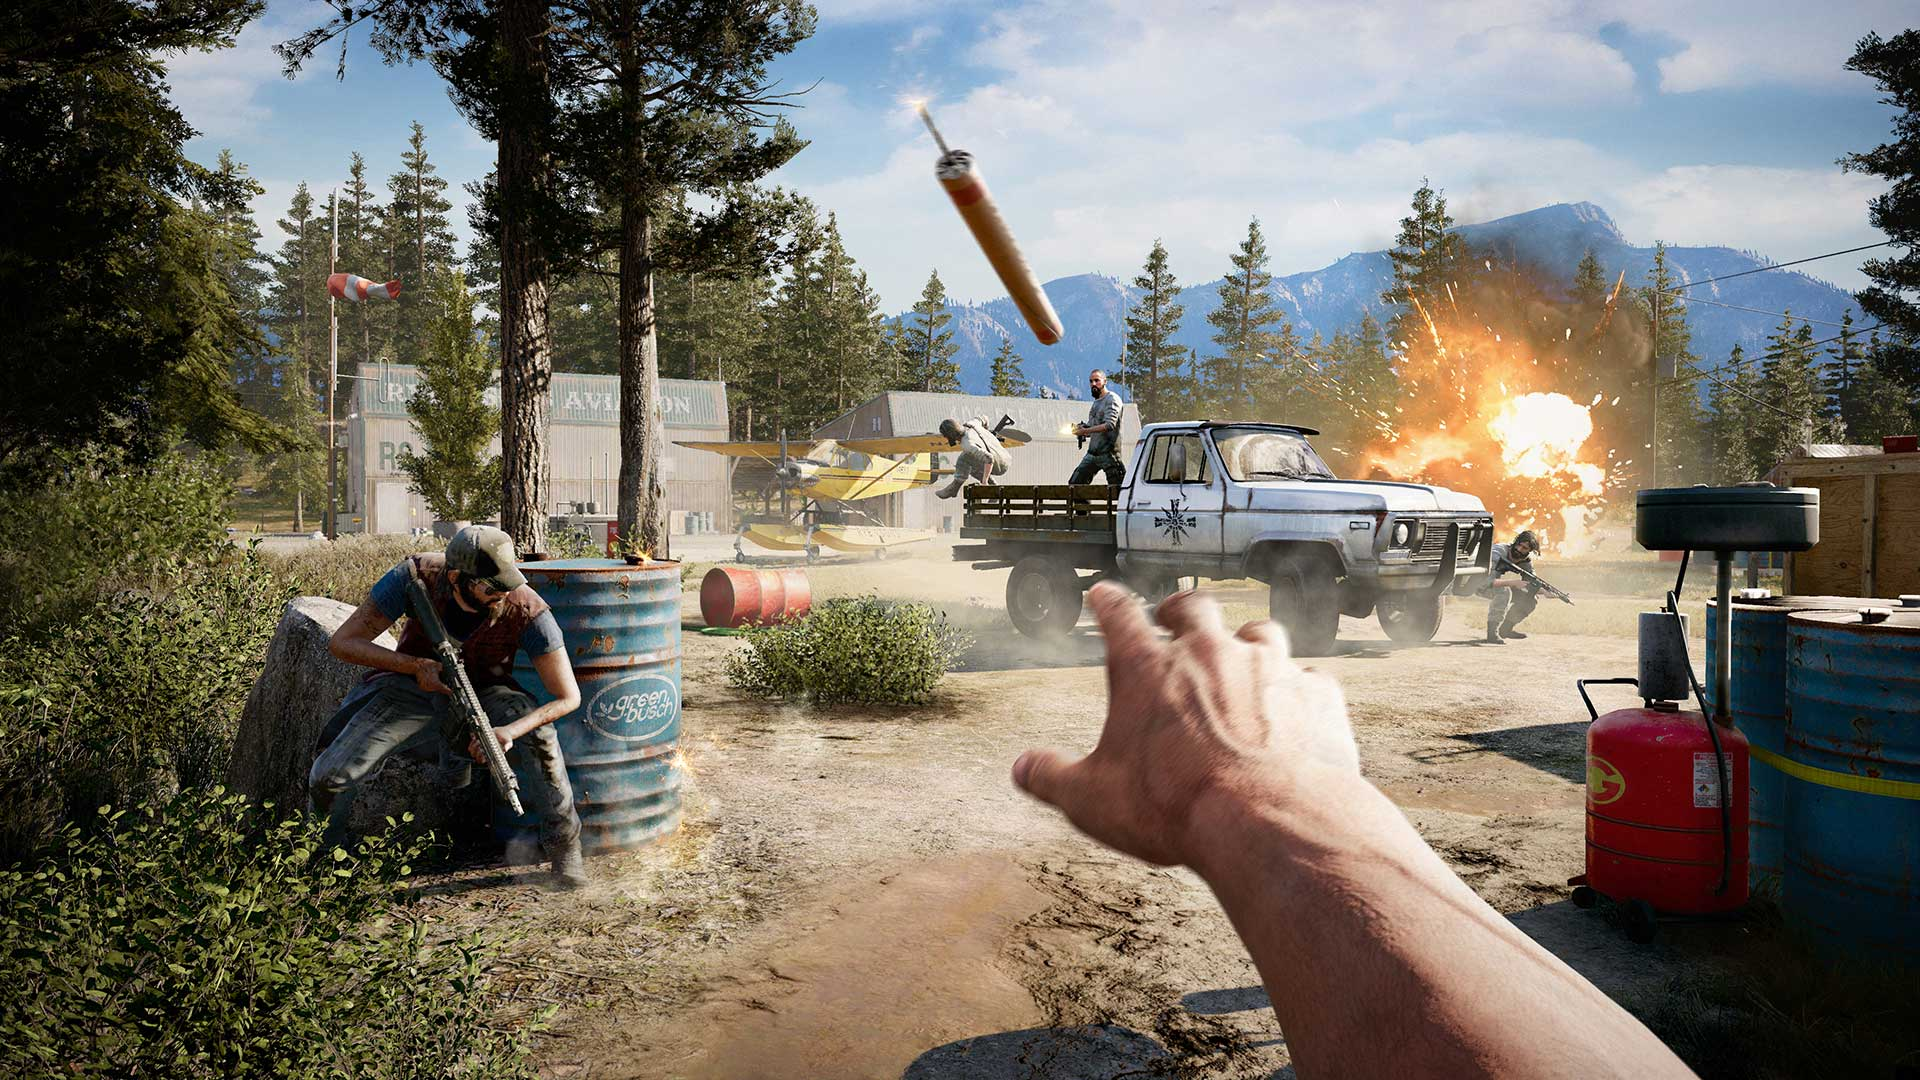 Far cry 5 on ps4 xbox one pc ubisoft us for Xbox one hunting and fishing games